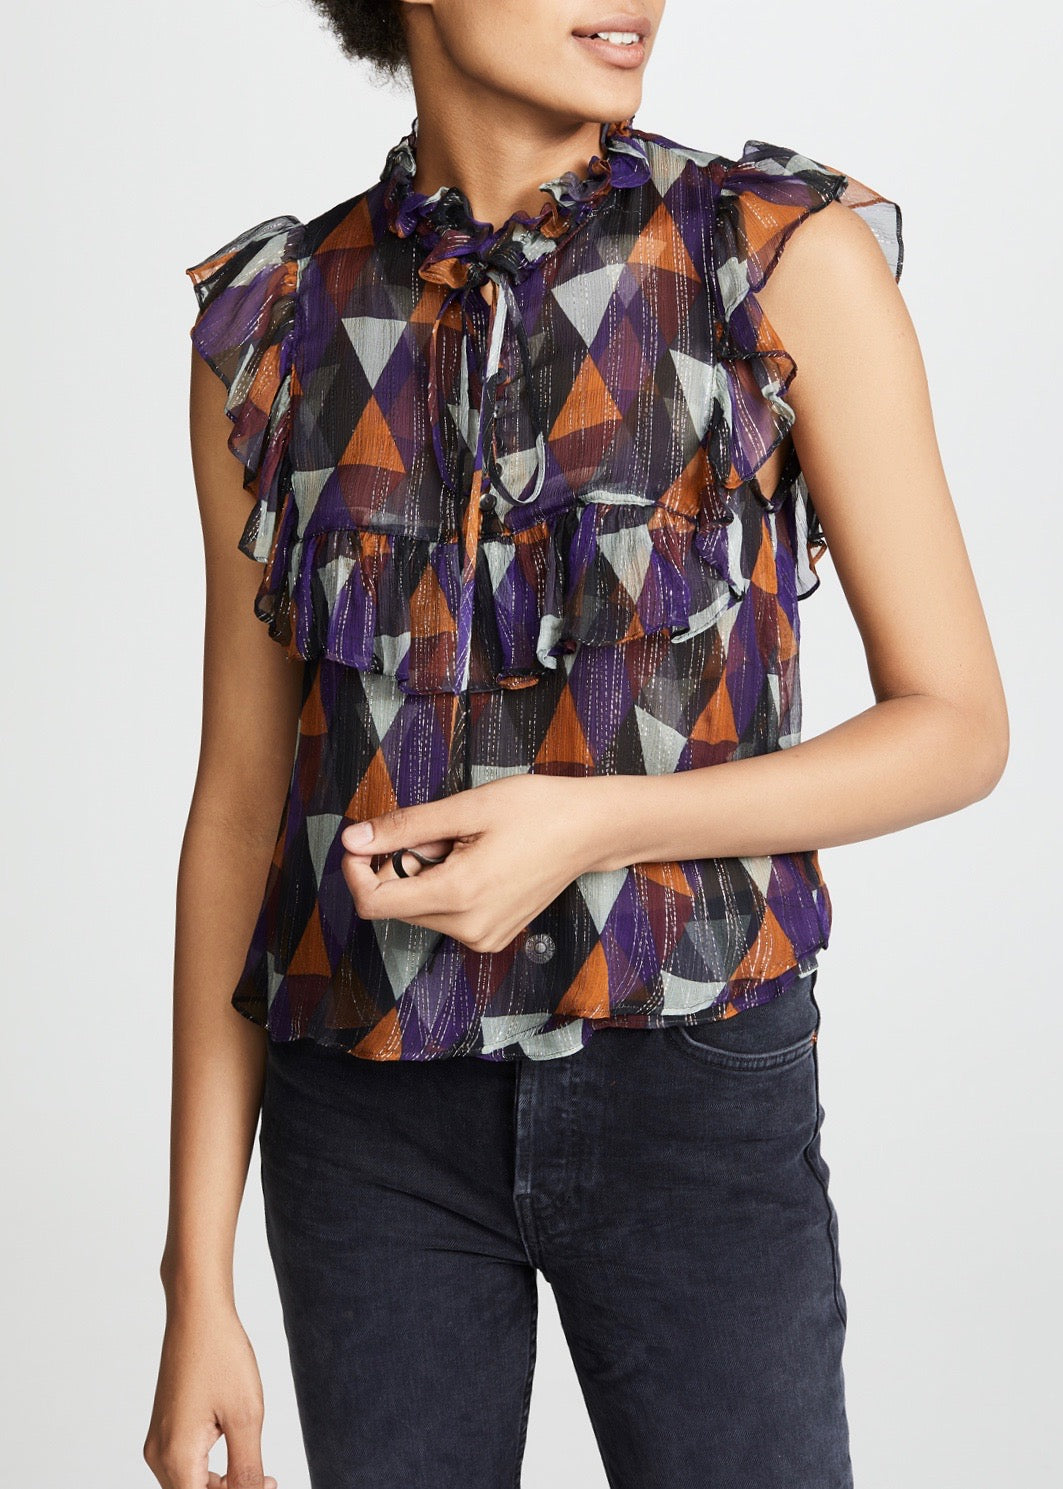 Warm Nicks blouse in multi